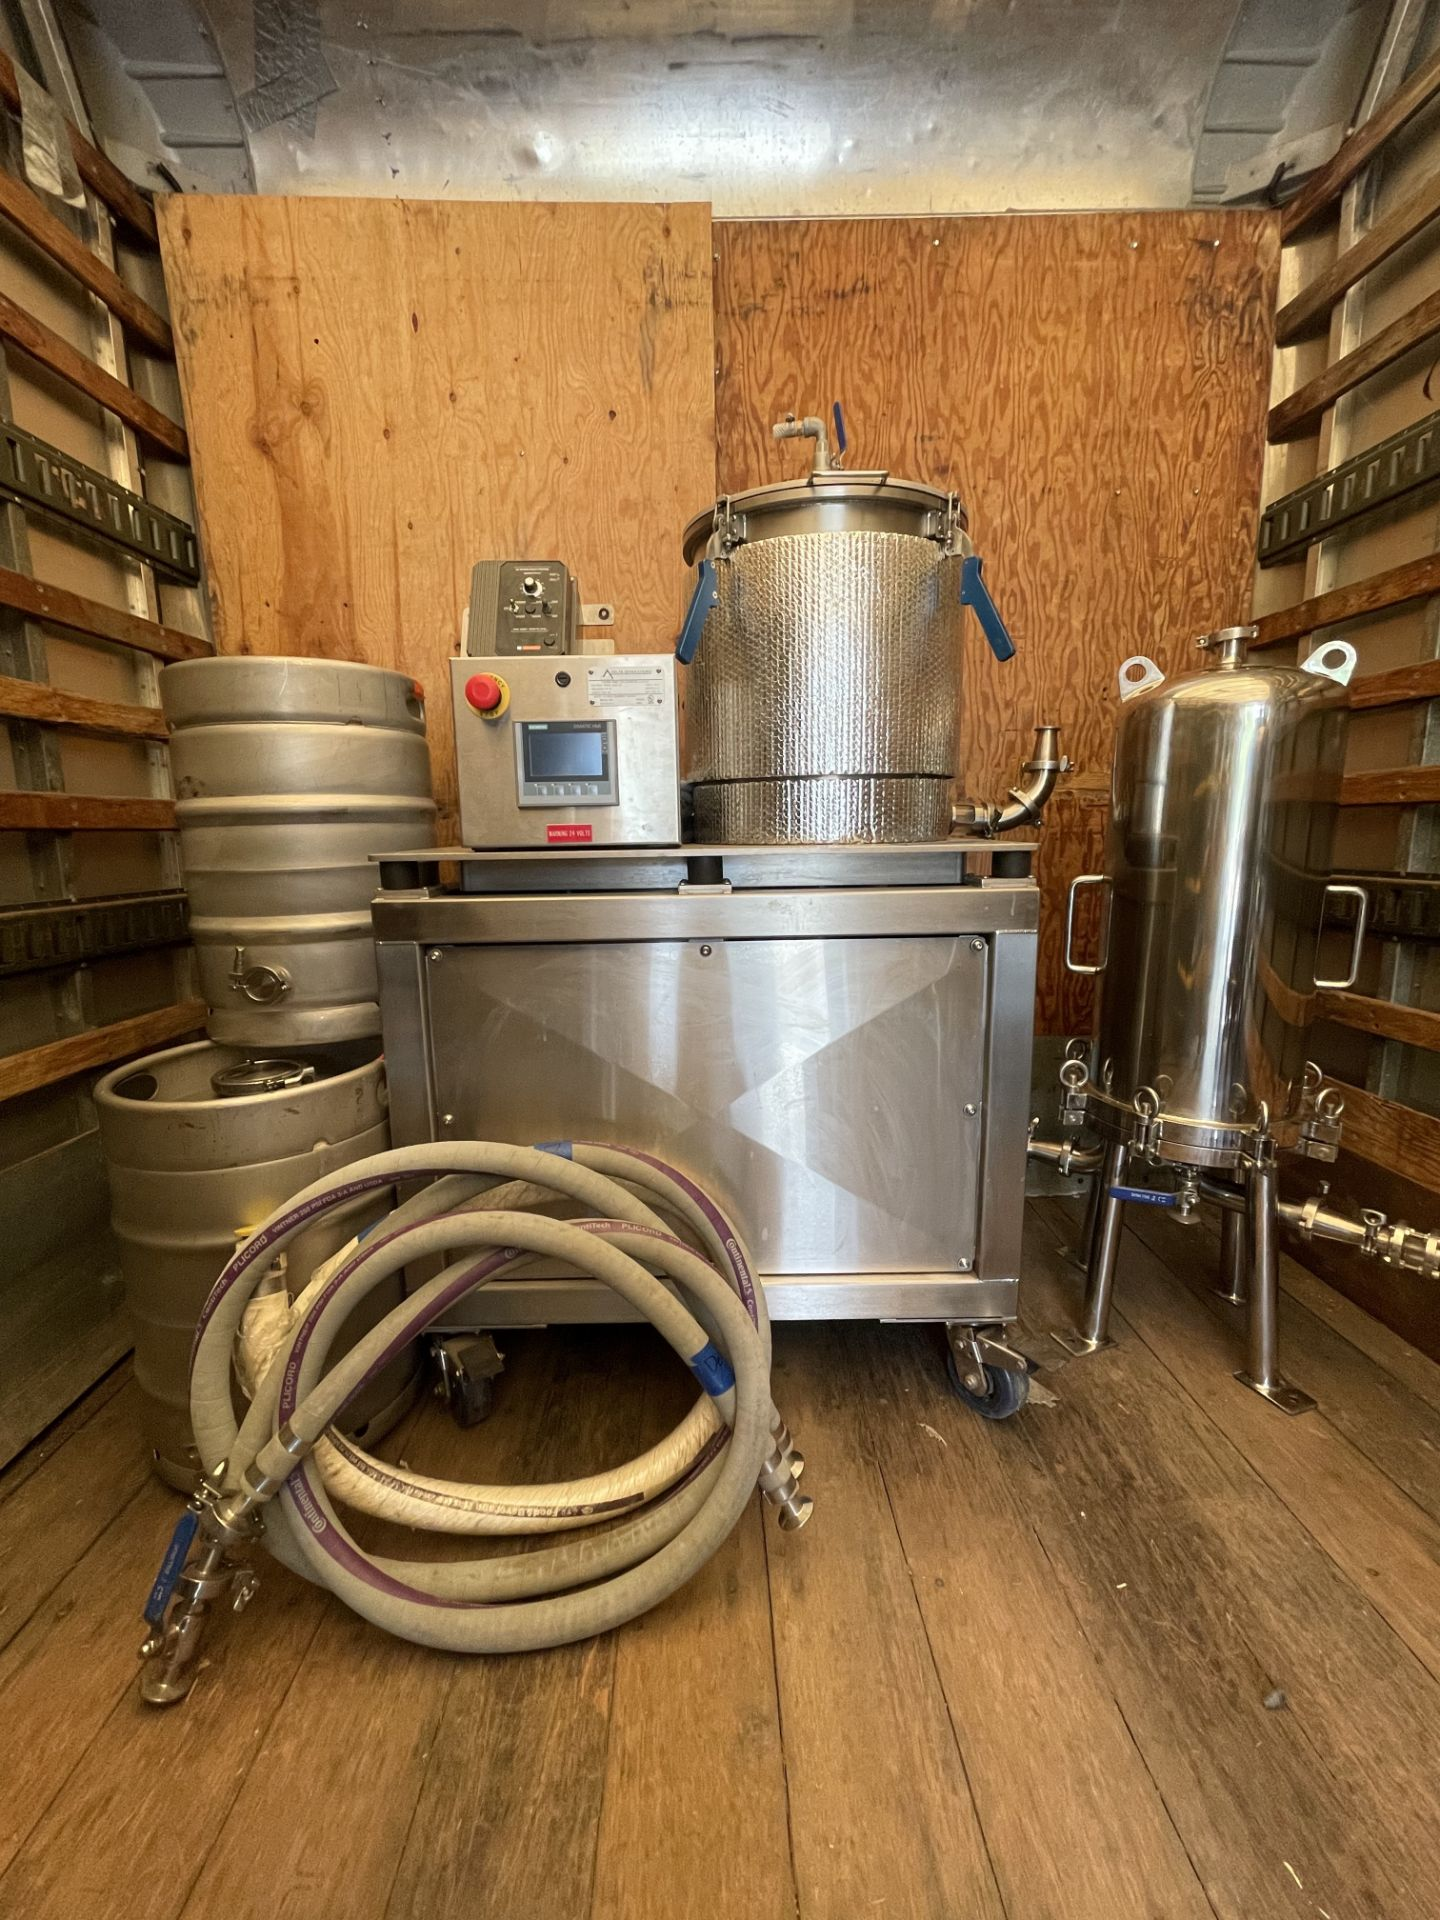 Used- Delta Separations CUP-15 Ethanol Extraction System. Capacity: 8-14 lbs/batch w/ (3) Kegs - Image 3 of 22